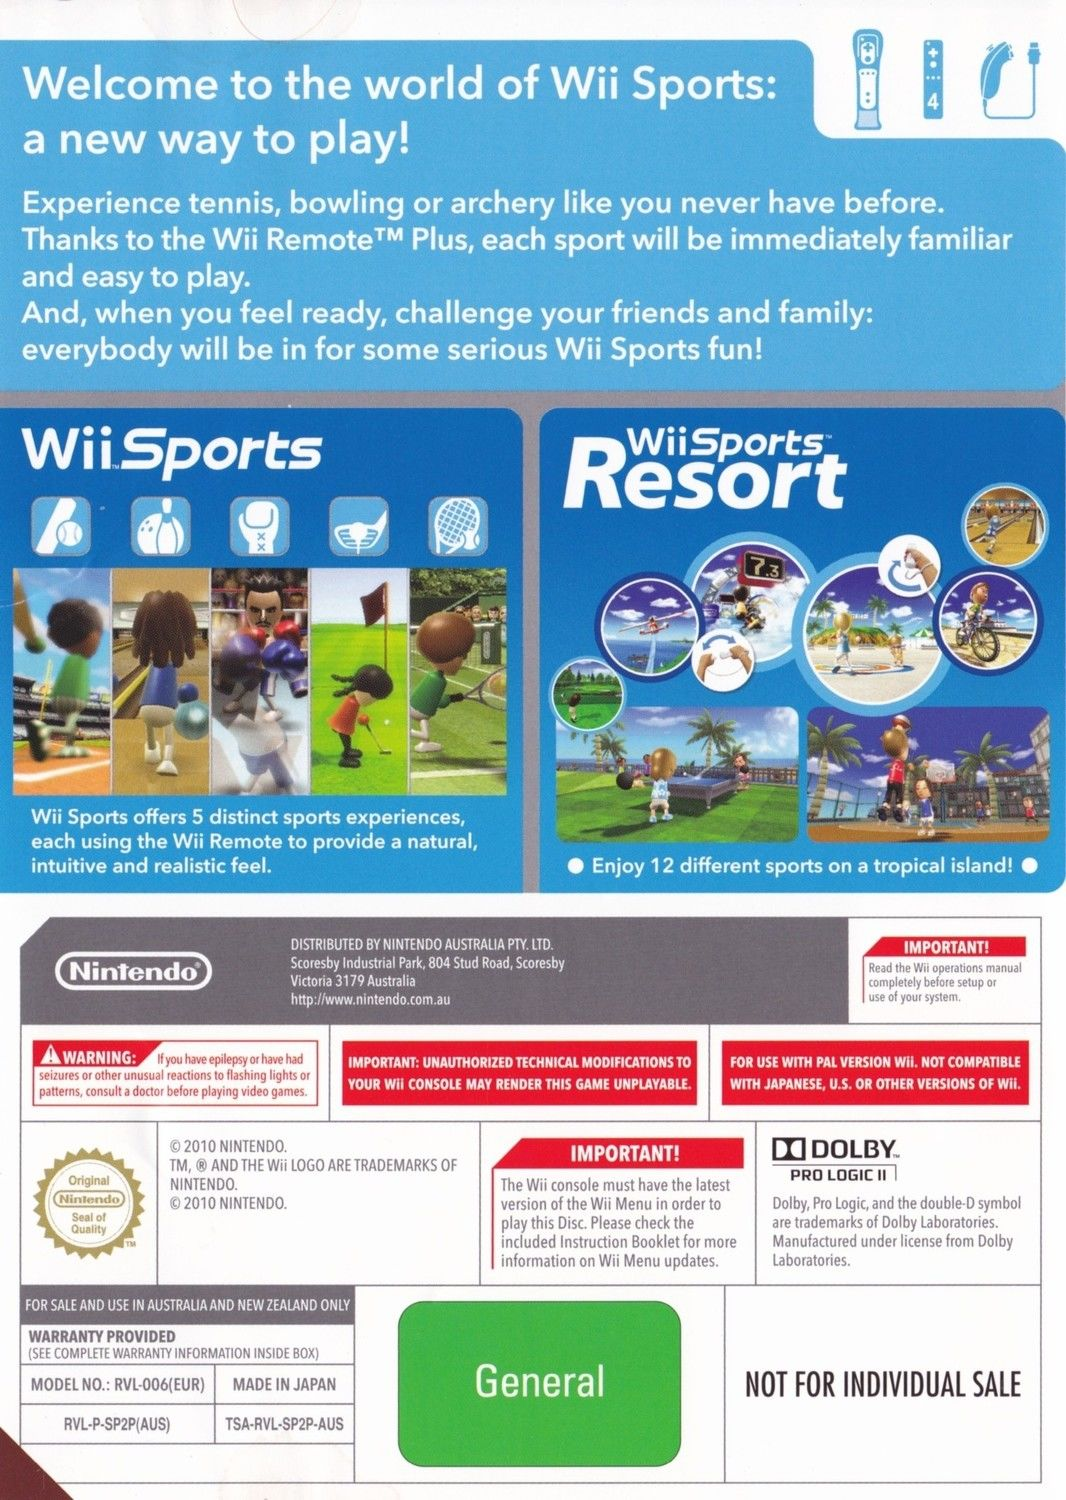 Wii Sports and Wii Sports Resort - Nintendo Wii game